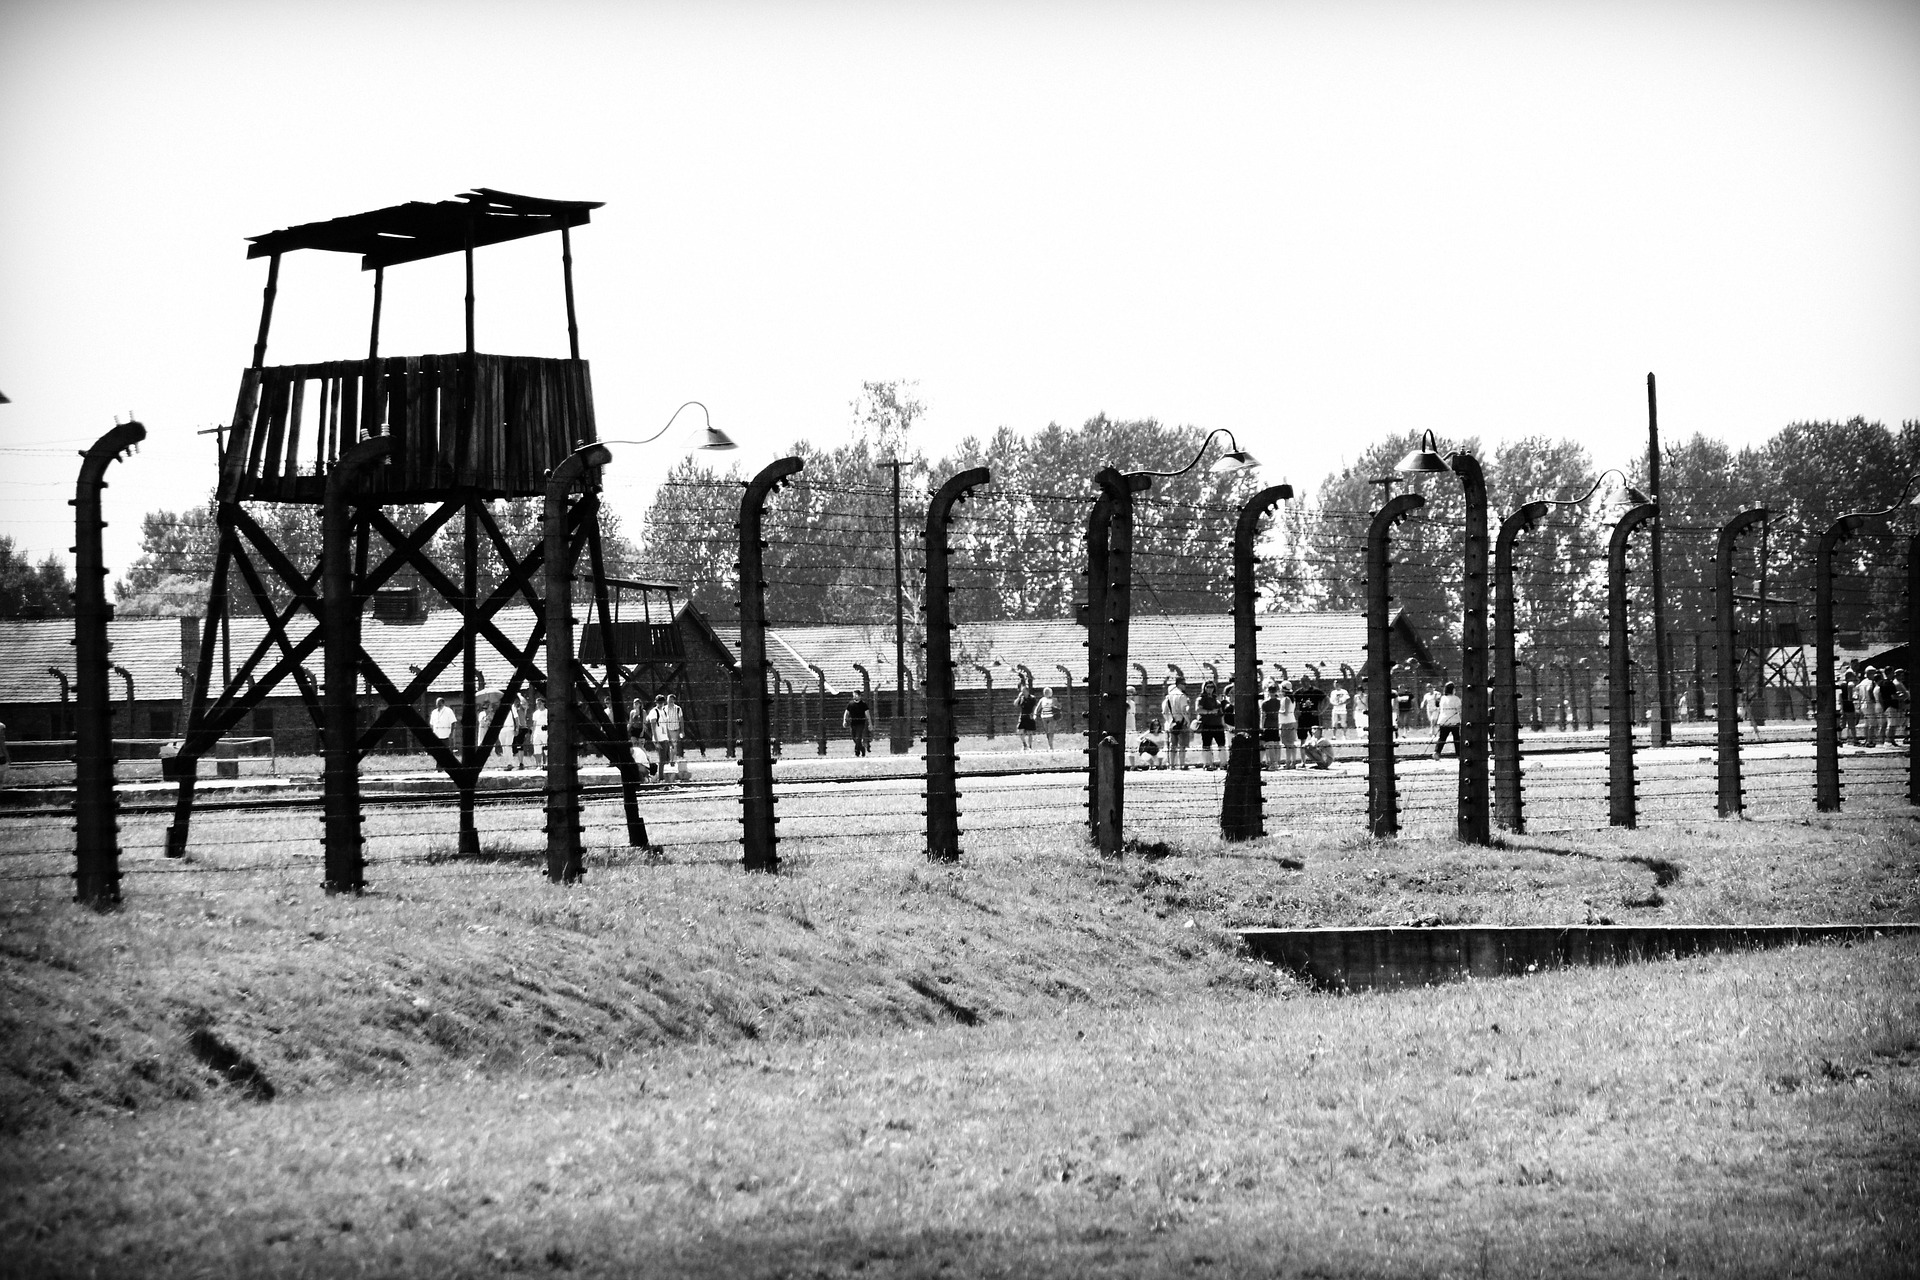 concentration-camp-1164562_1920